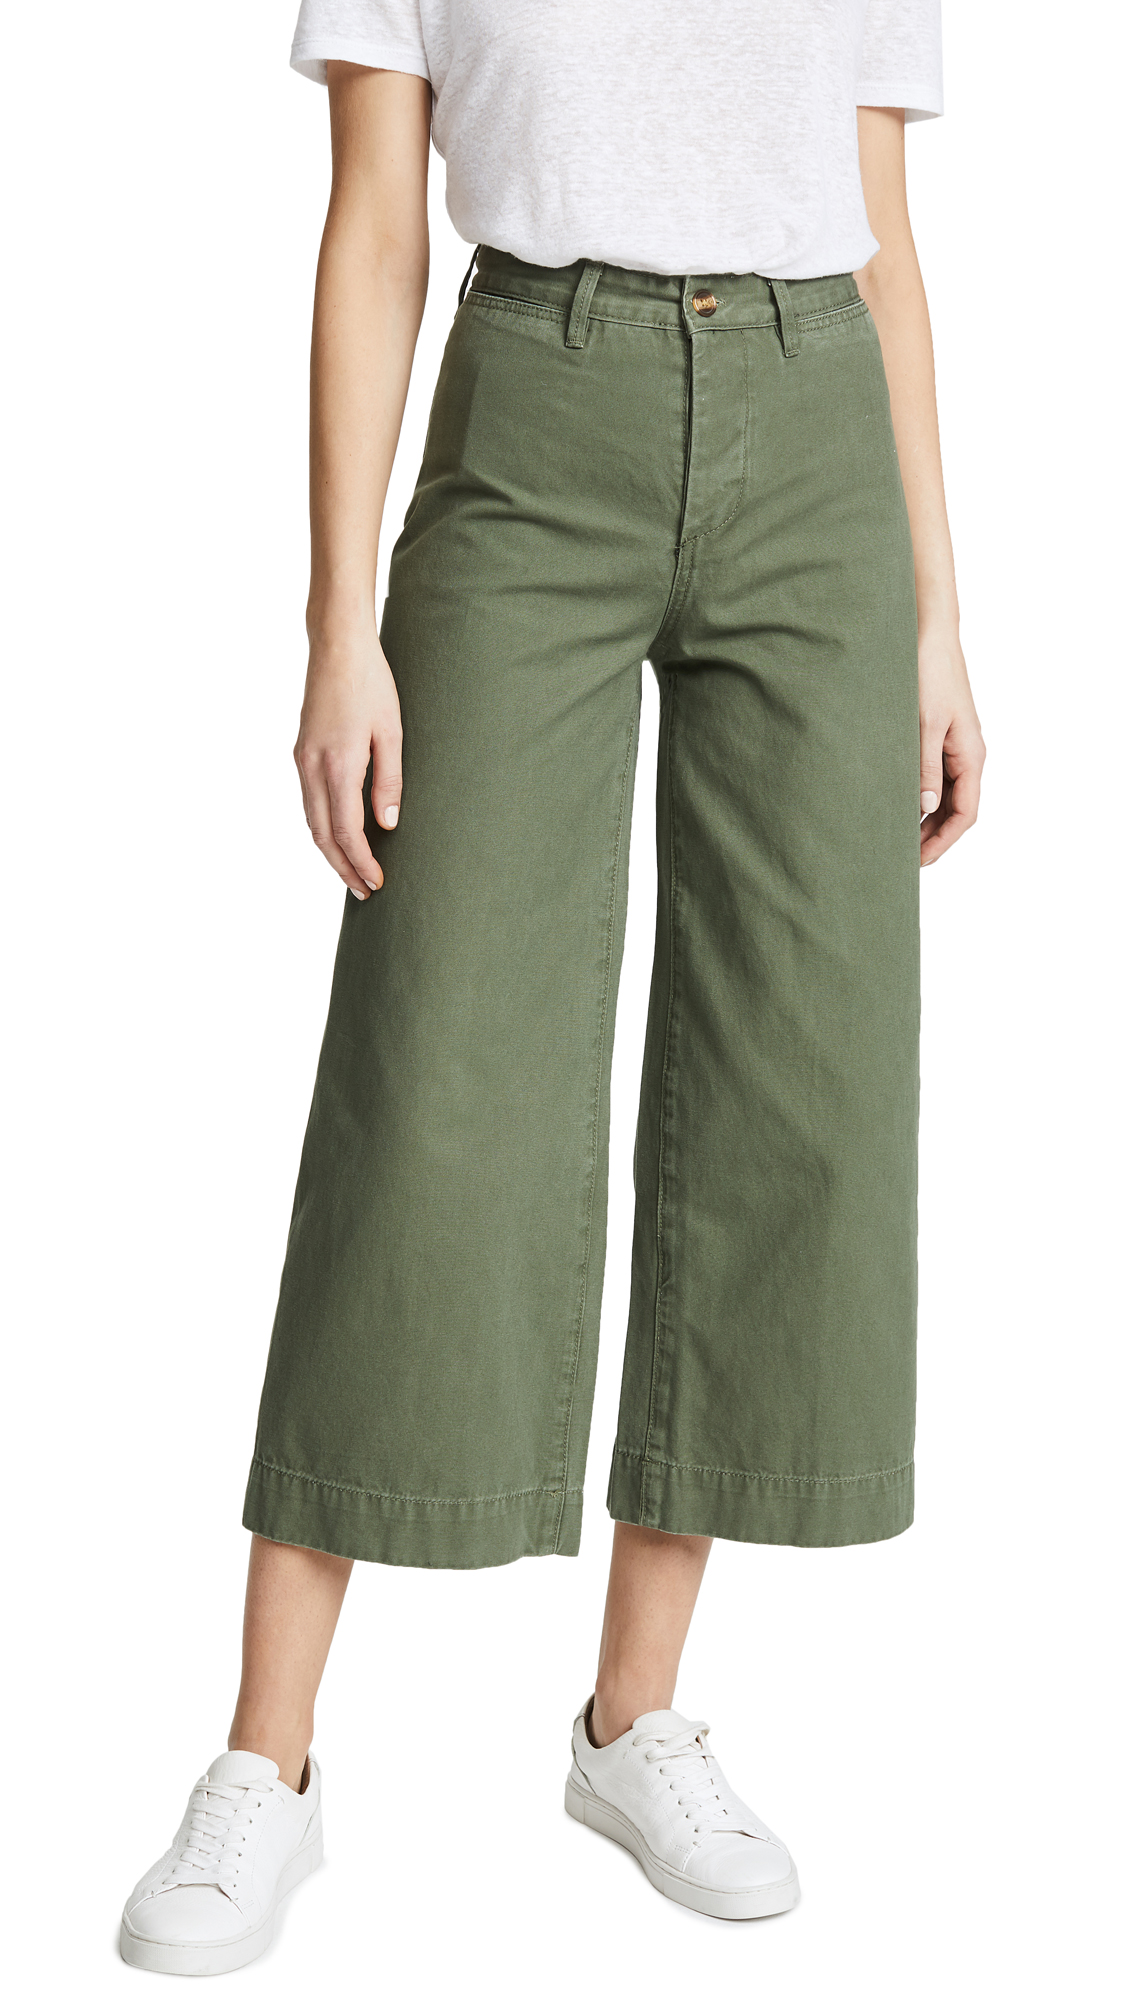 EVIDNT Wide Leg Cropped Pants In Olive